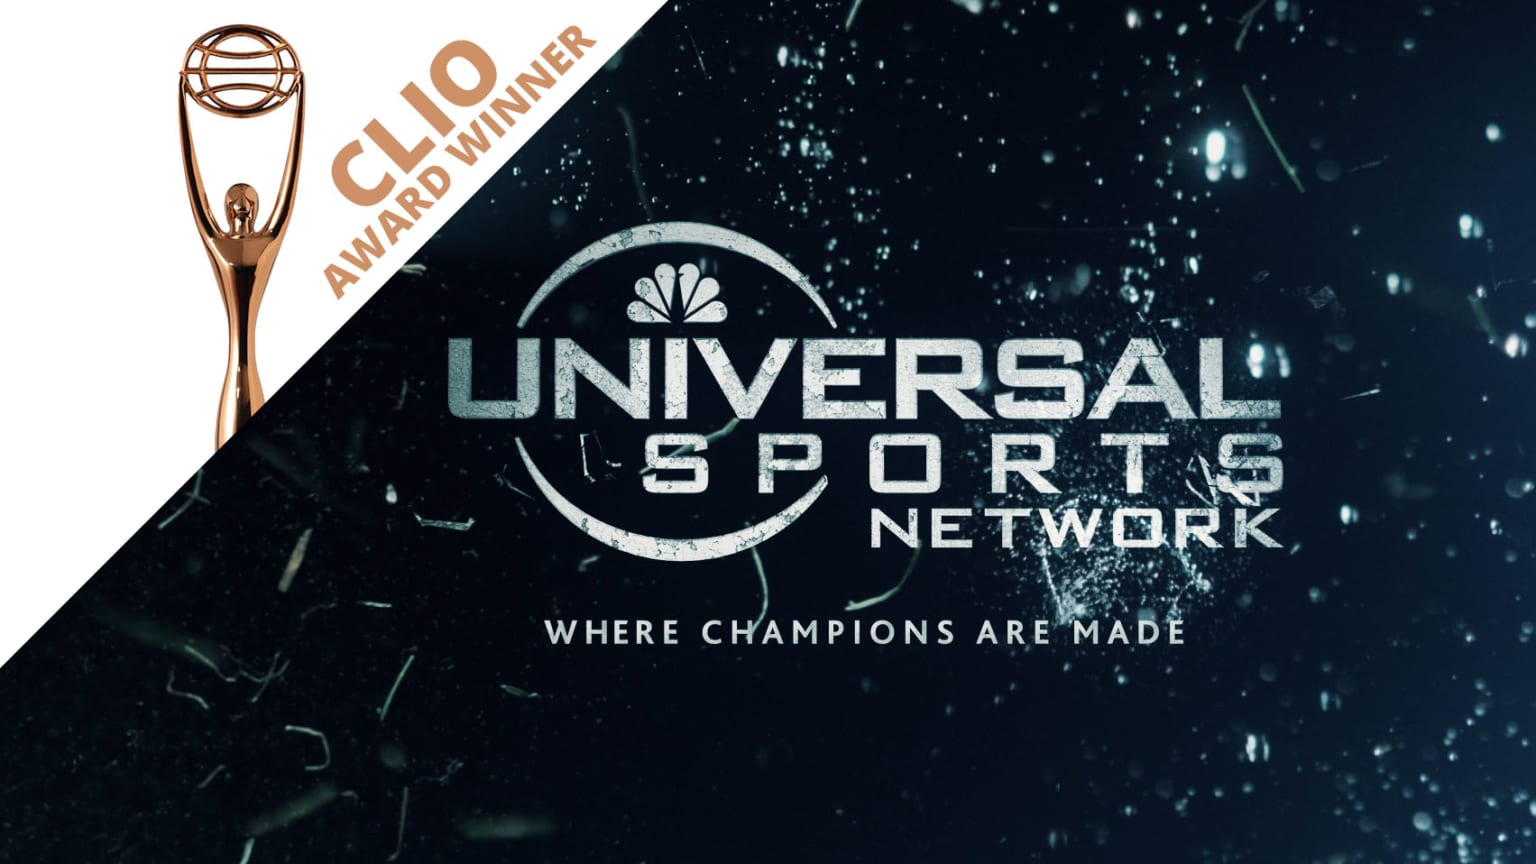 Universal Sports Network | Hero Spot + Promo Toolkit